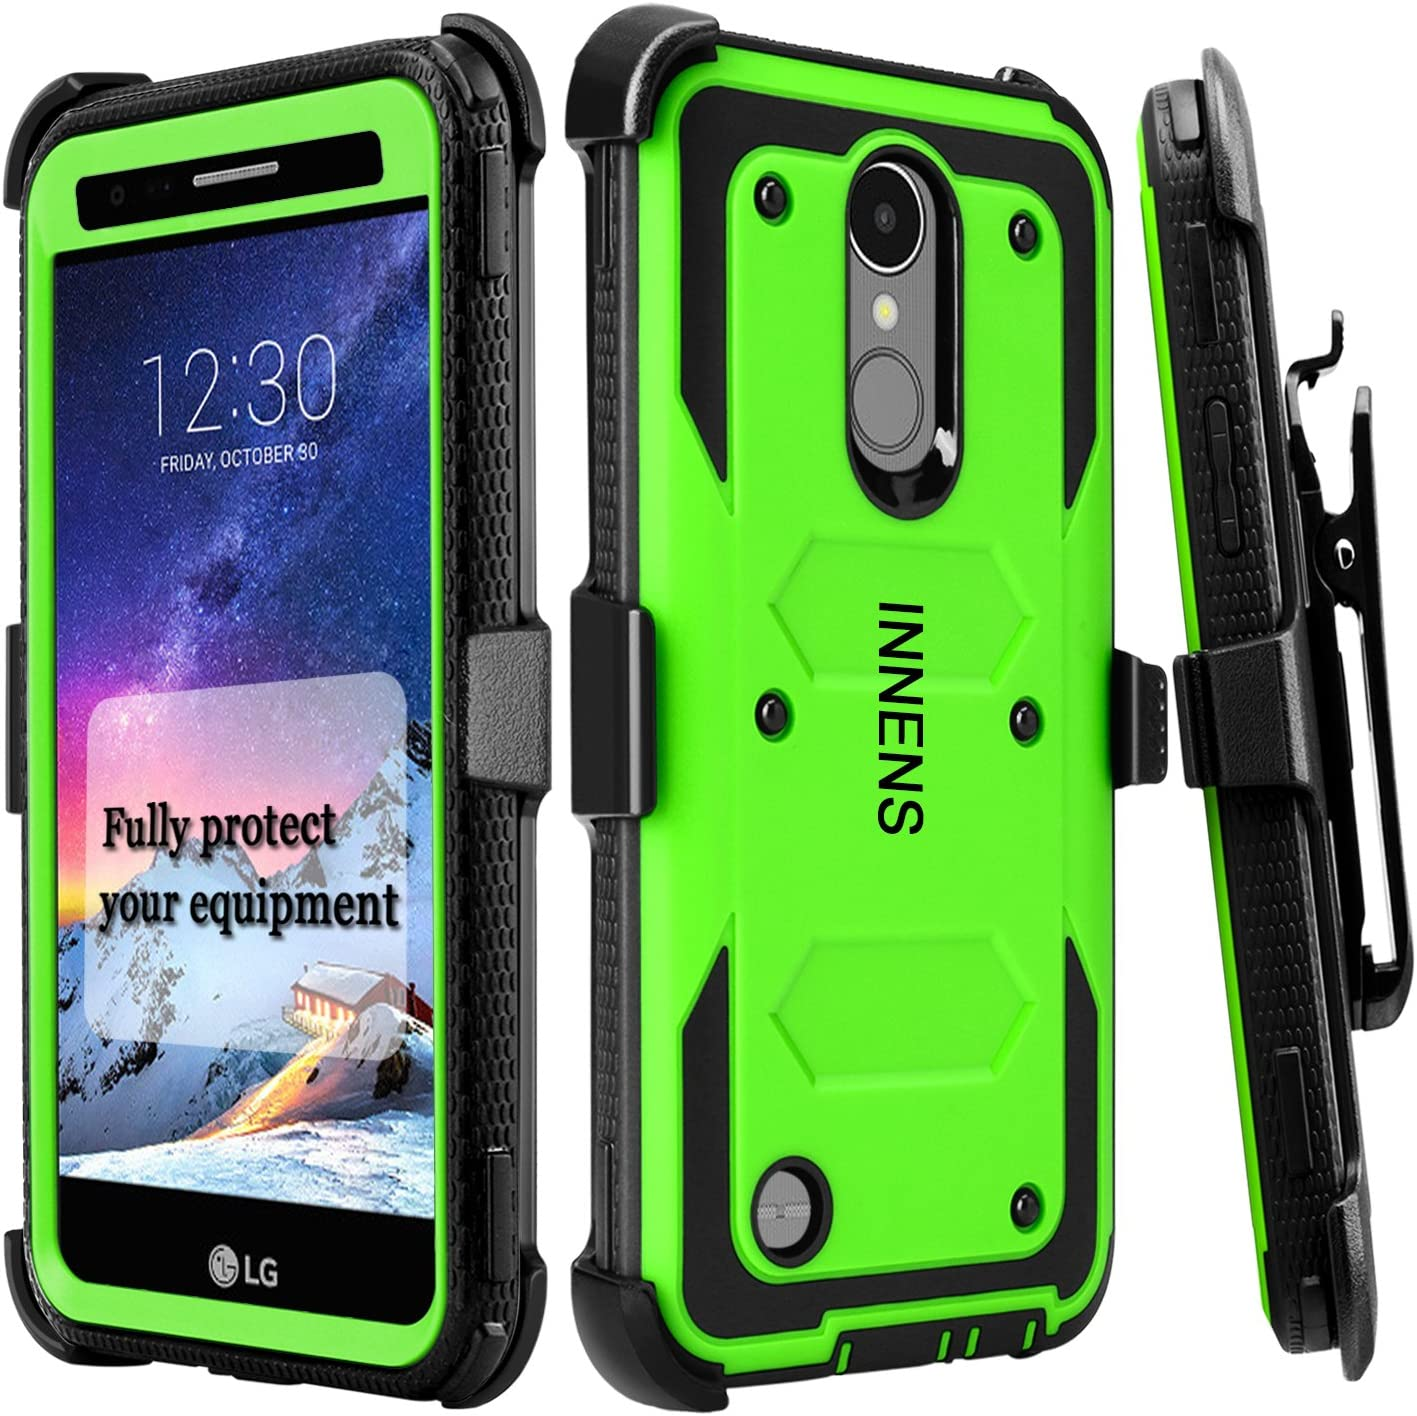 Innens Compatible LG Aristo 2 / LG Aristo 3 Plus/LG X210 / LG Tribute Dynasty Case, [Shockproof] Hybrid Heavy Duty Kickstand Case with Swivel Belt Clip Compatible LG K8 2017 / K4 2017 (Green)